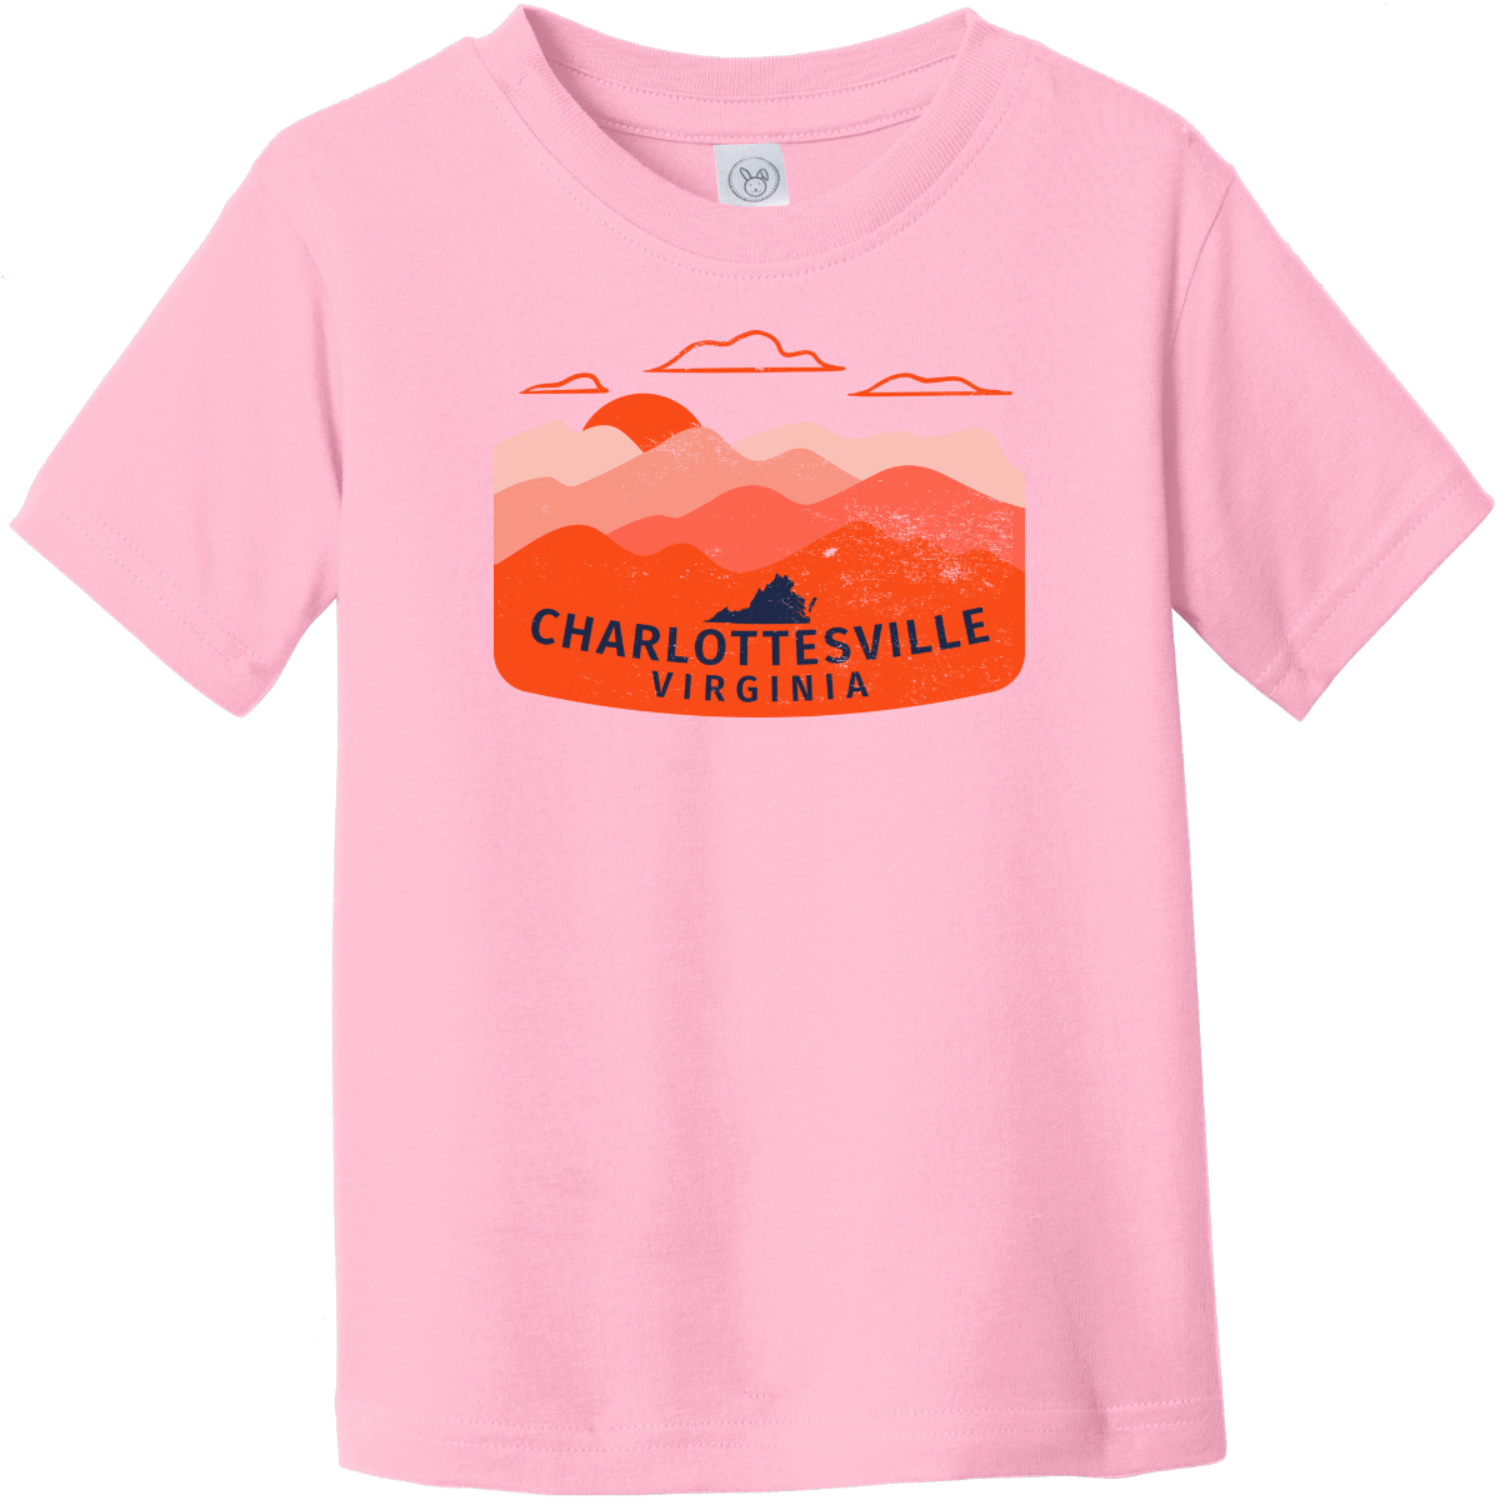 Charlottesville Virginia Outdoor Toddler T-Shirt Pink Rabbit Skins Toddler Fine Jersey Tee RS3321